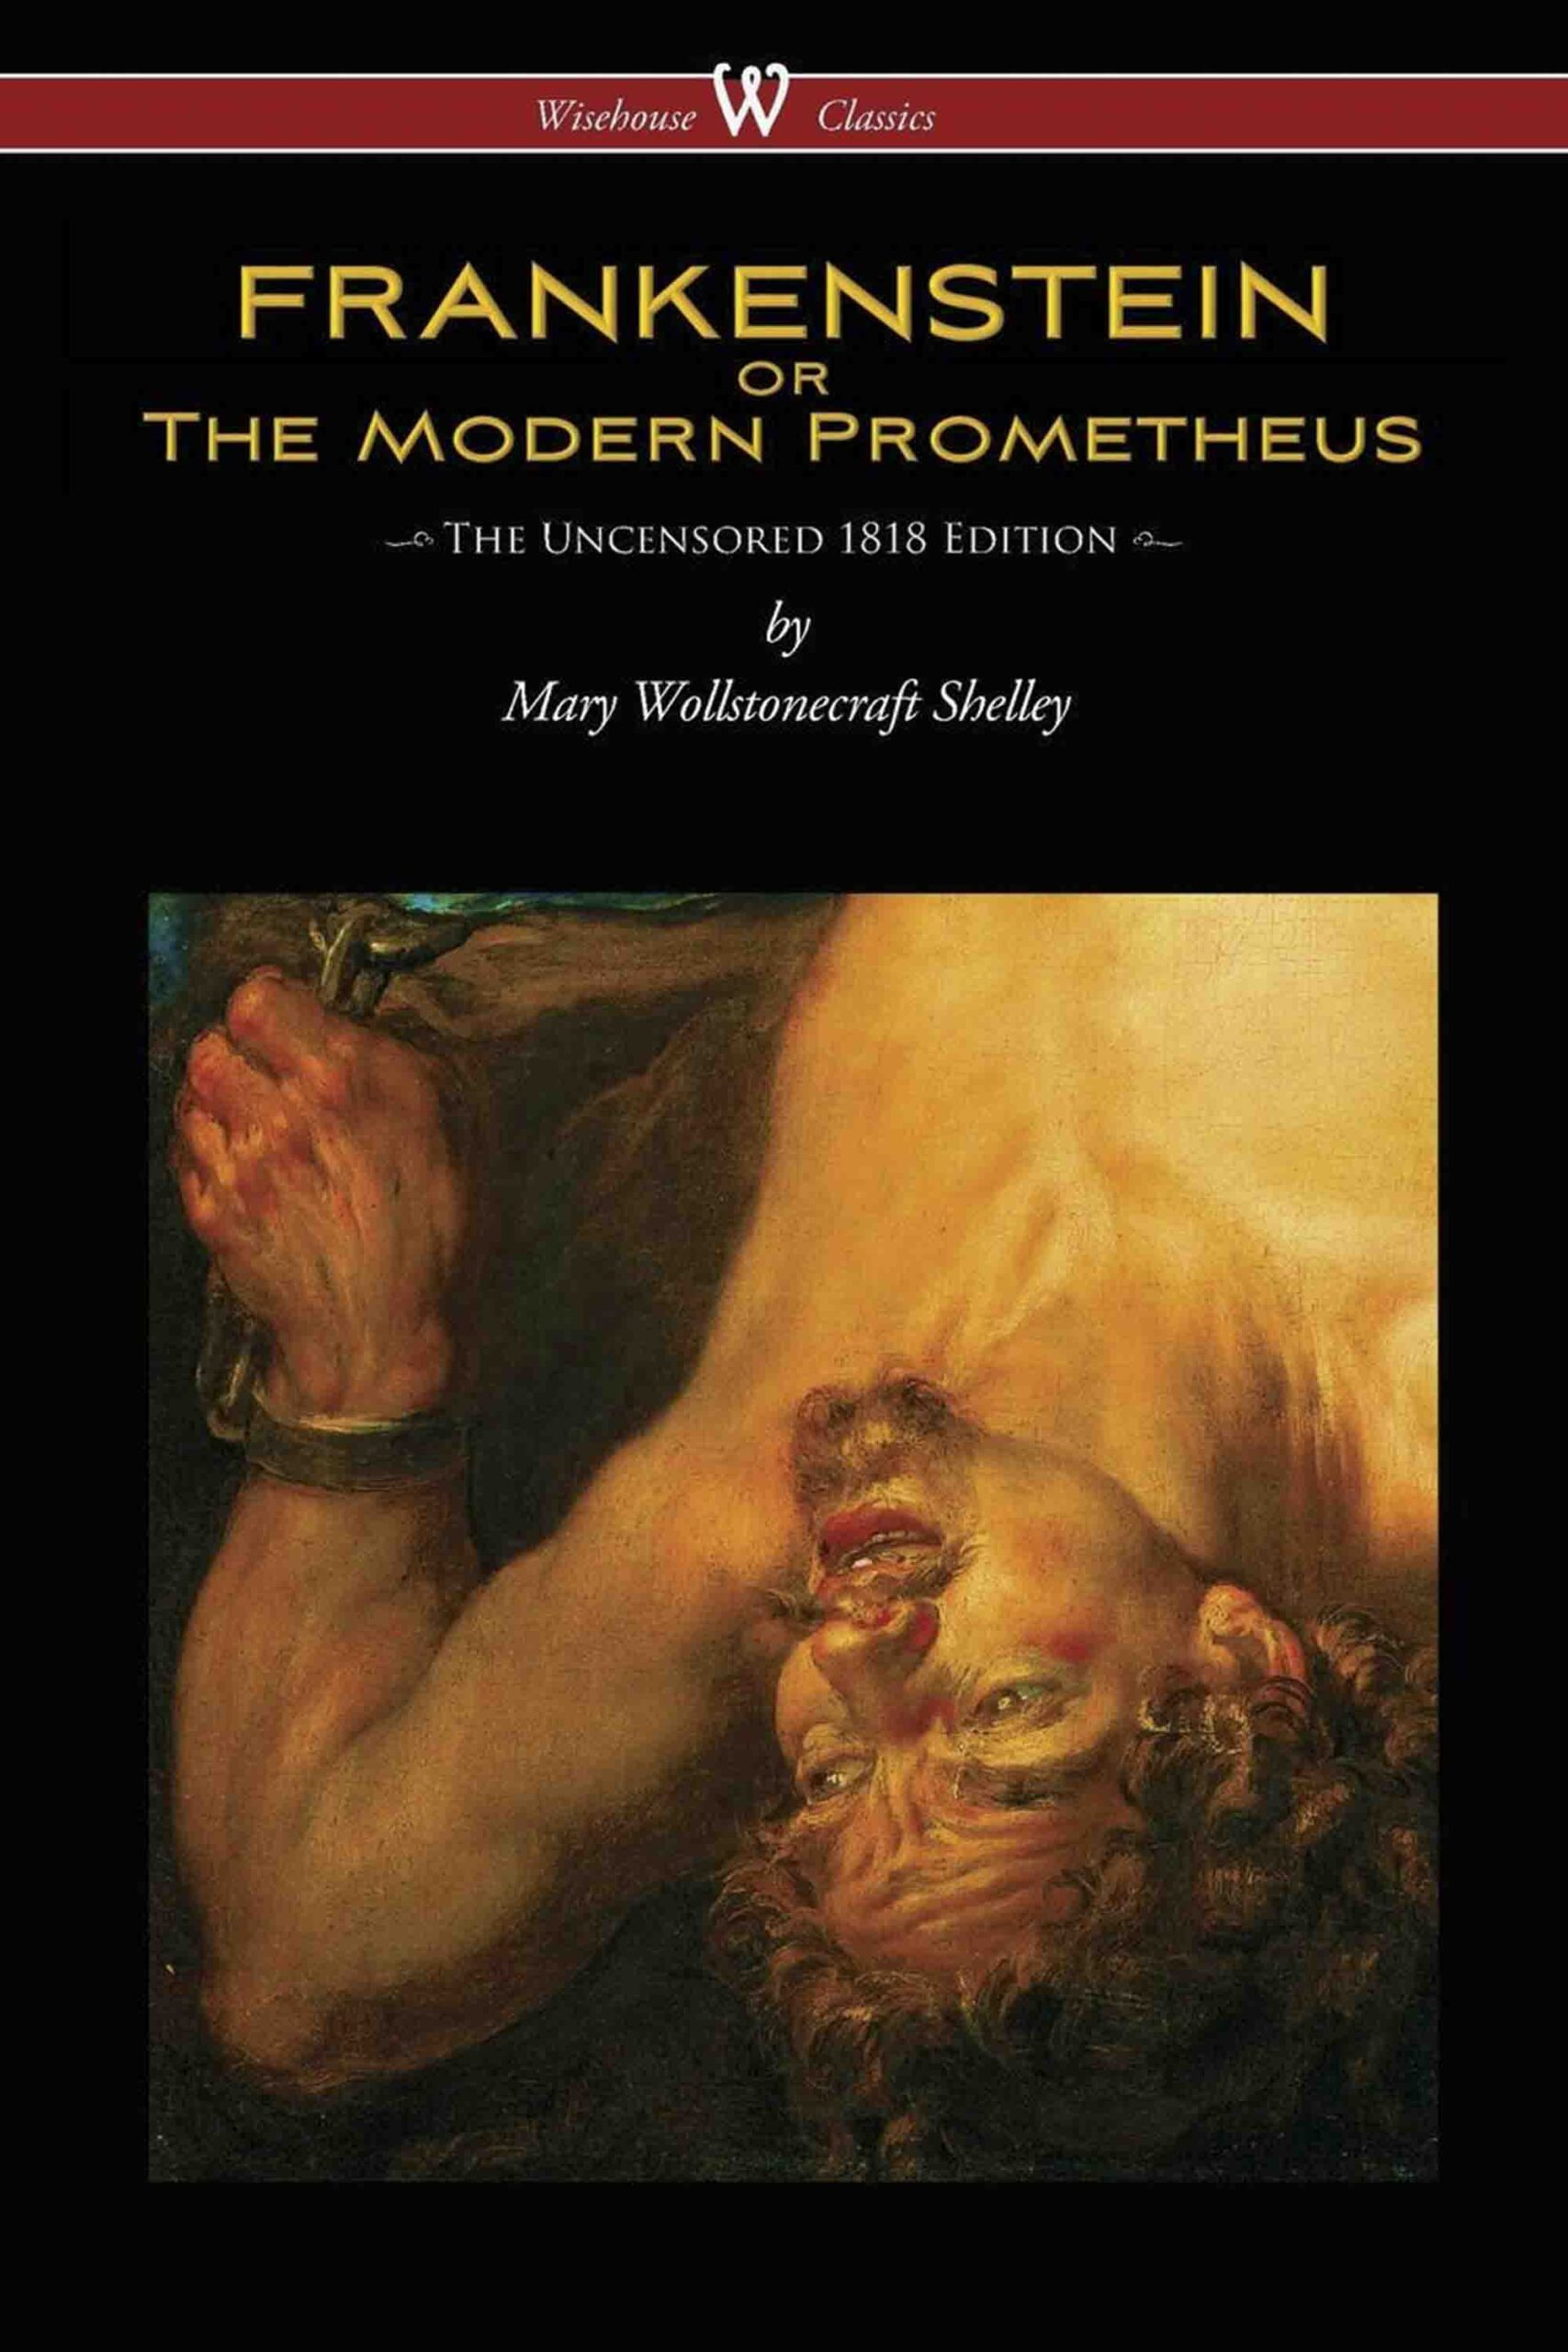 FRANKENSTEIN or The Modern Prometheus (Uncensored 1818 Edition – Wisehouse Classics)